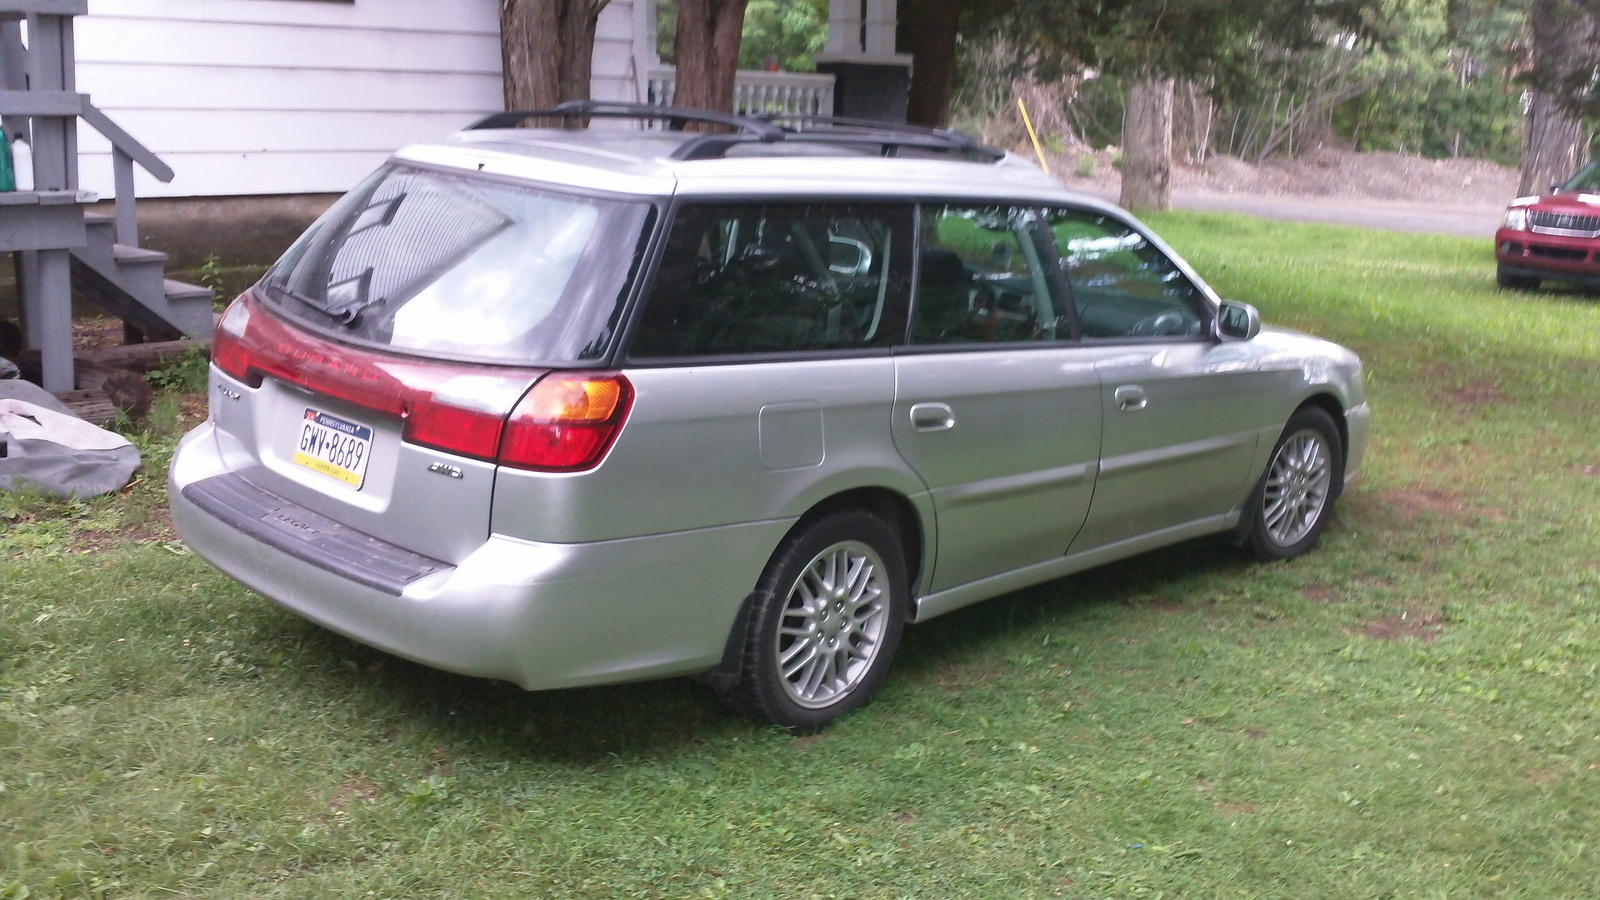 Subaru legacy questions what would be the best way to beef up what would be the best way to beef up the suspension to hall a small camper trailer vanachro Images